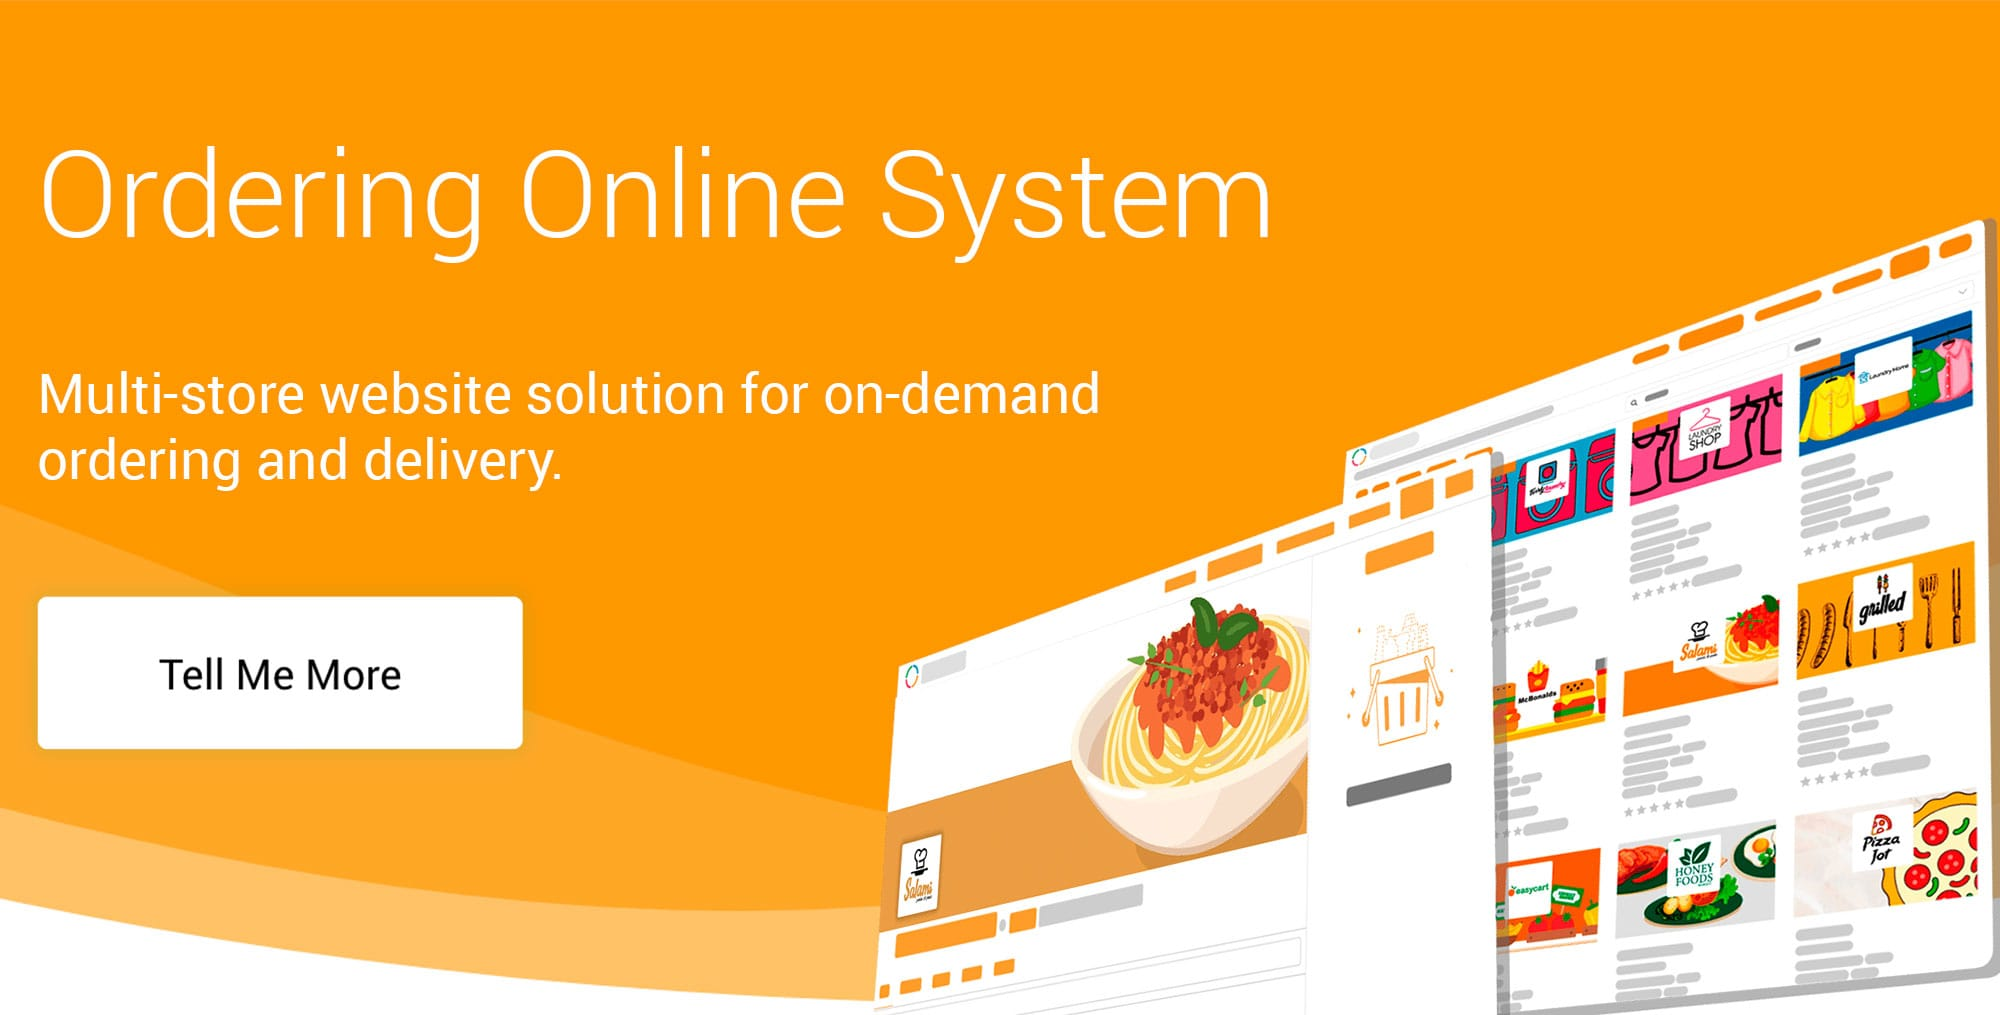 Online Ordering System - E-commerce solution for on-demand